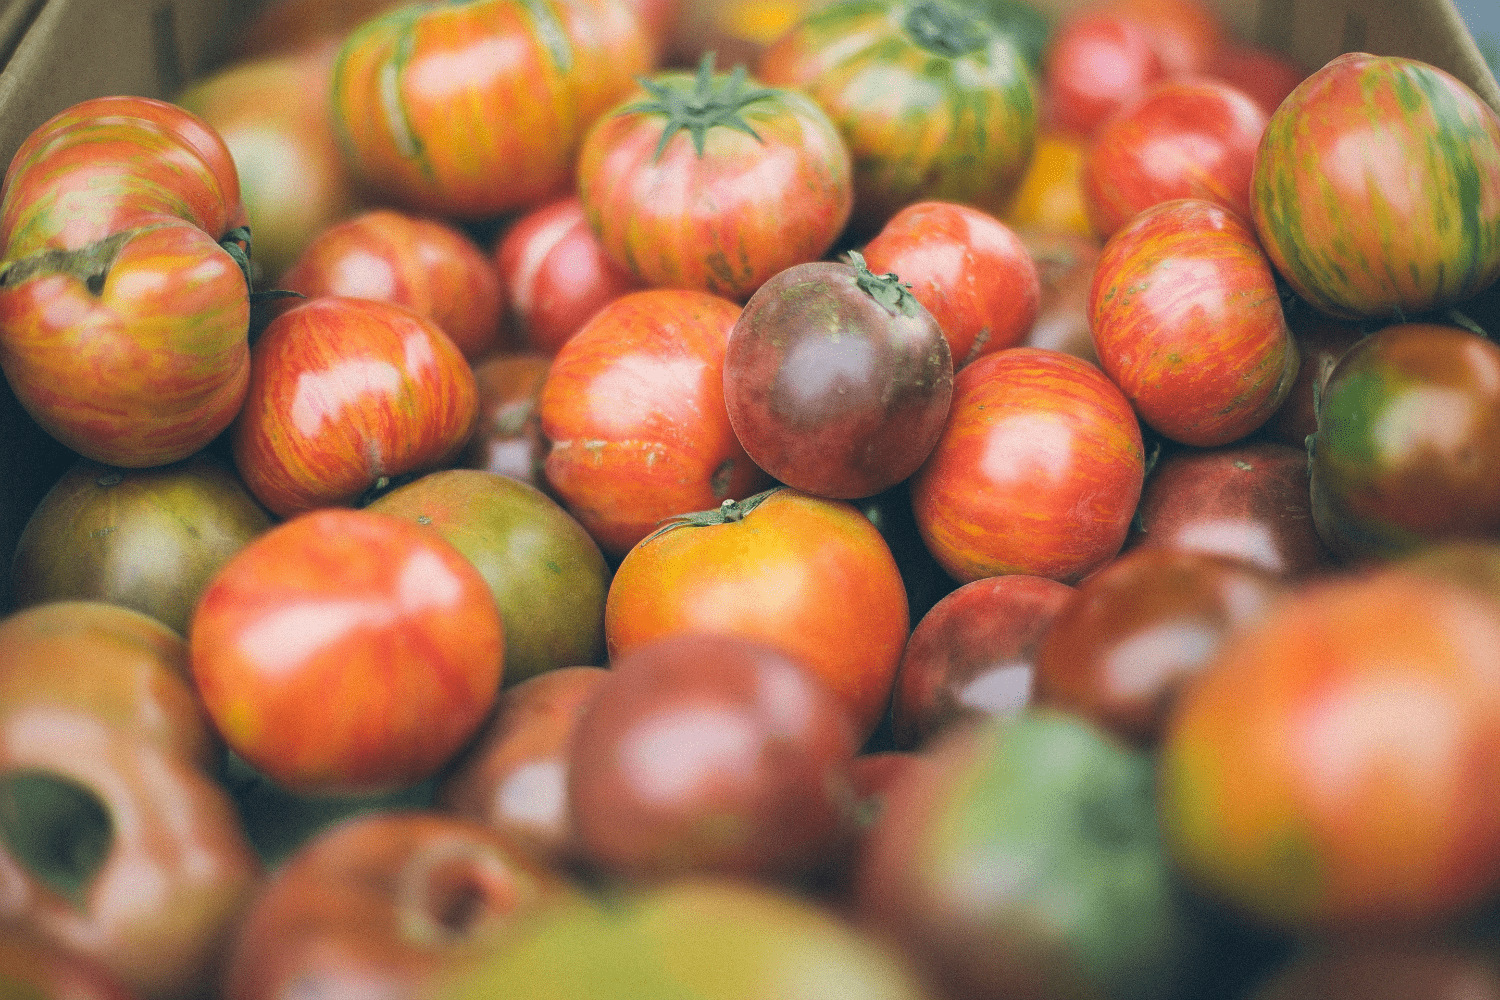 Heirloom tomatoes of every color and size.